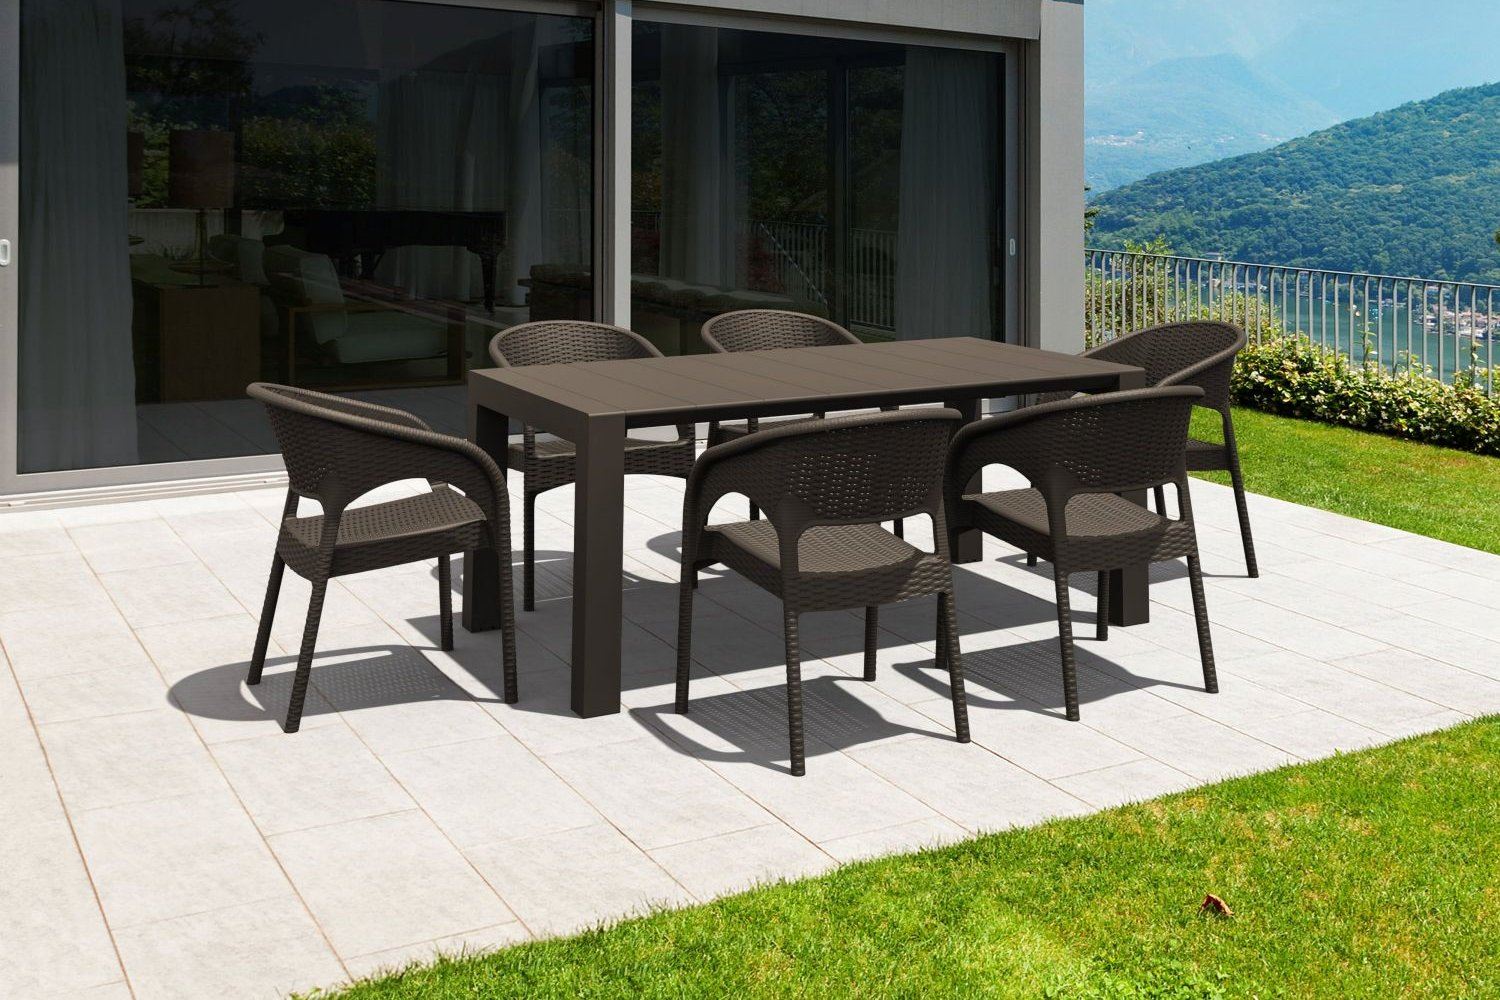 Panama Extendable Patio Dining Set 7 piece White ISP8082S-WH - 1